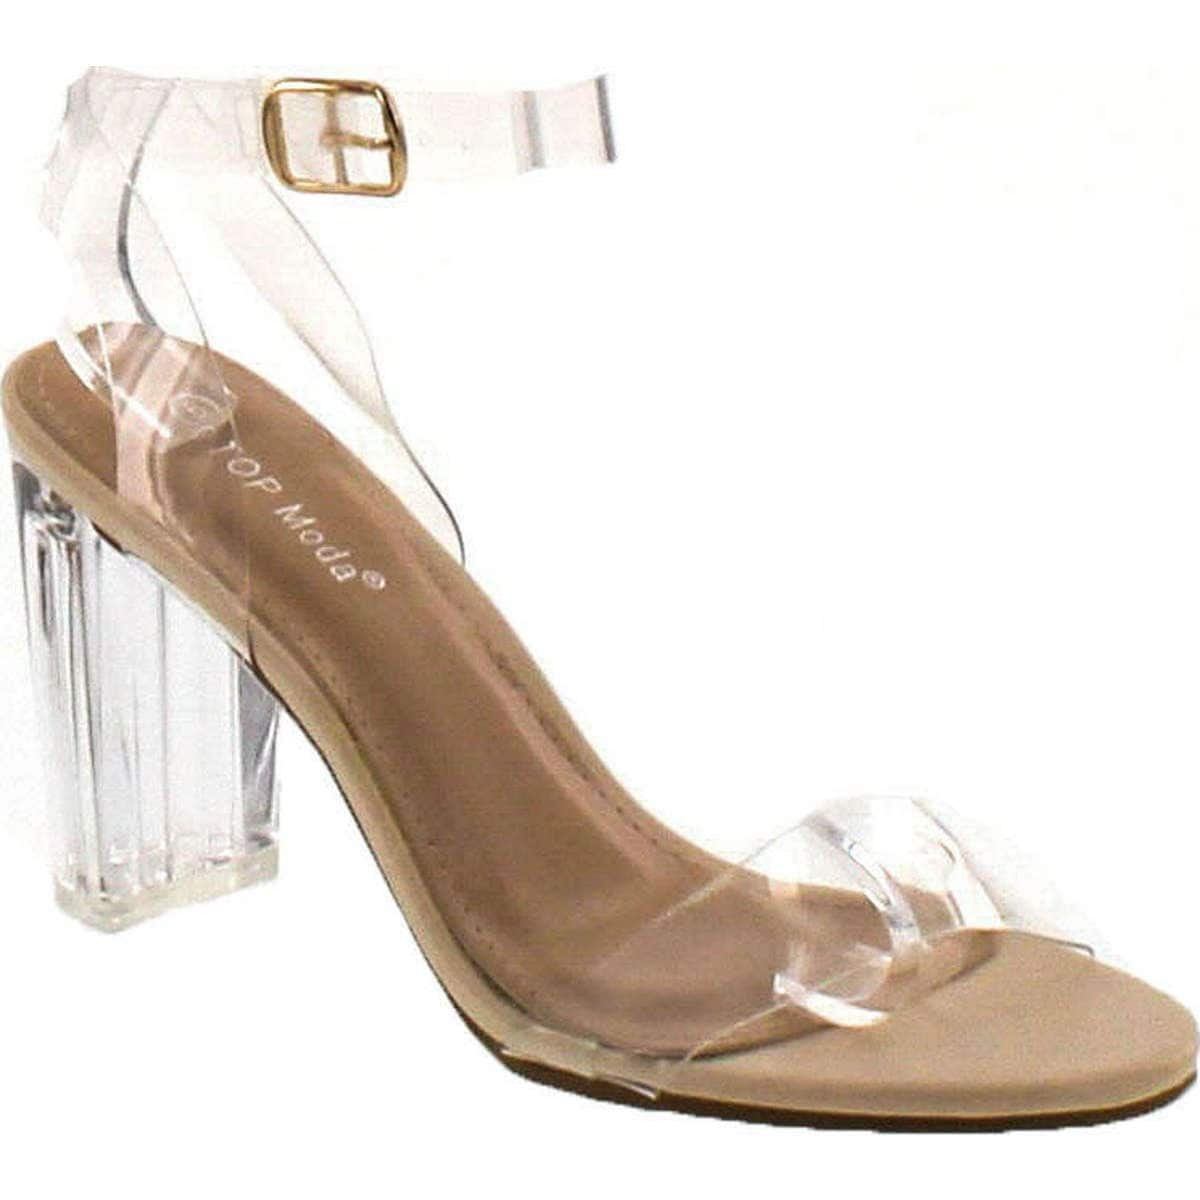 3210c22c8 Shop Top Moda Women's Alma-70 Lucite Clear Strappy Block Chunky High Heel  Open Peep Toe Sandal - Free Shipping On Orders Over $45 - Overstock -  14820228